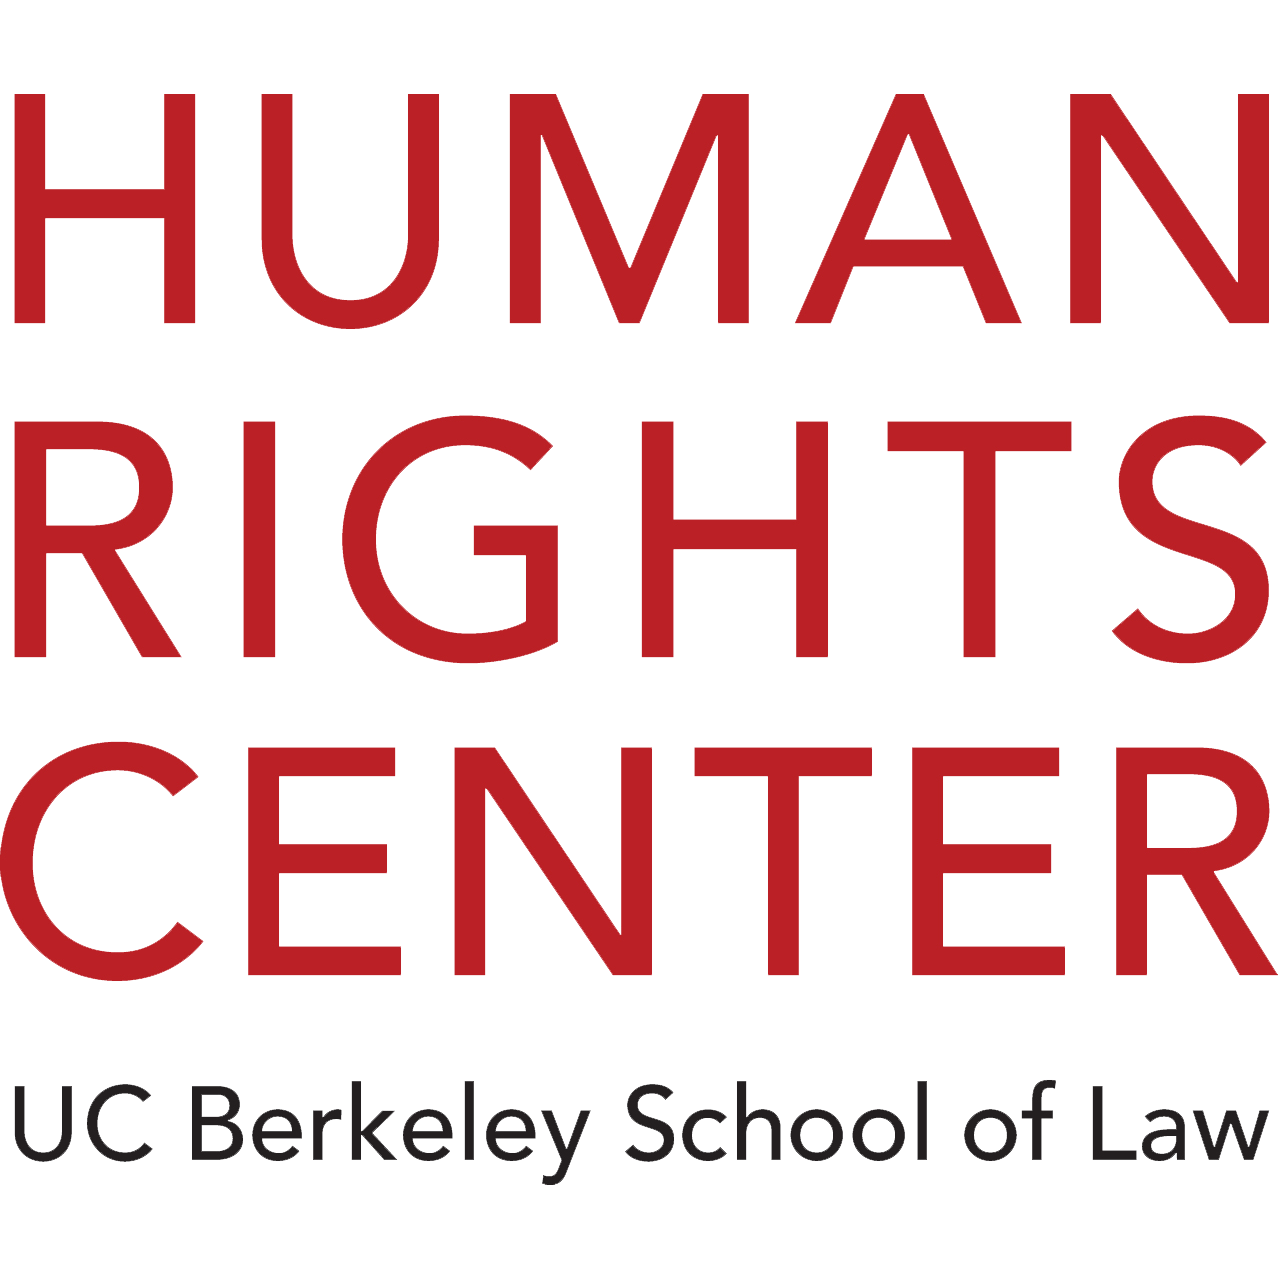 Human Rights Center, logo